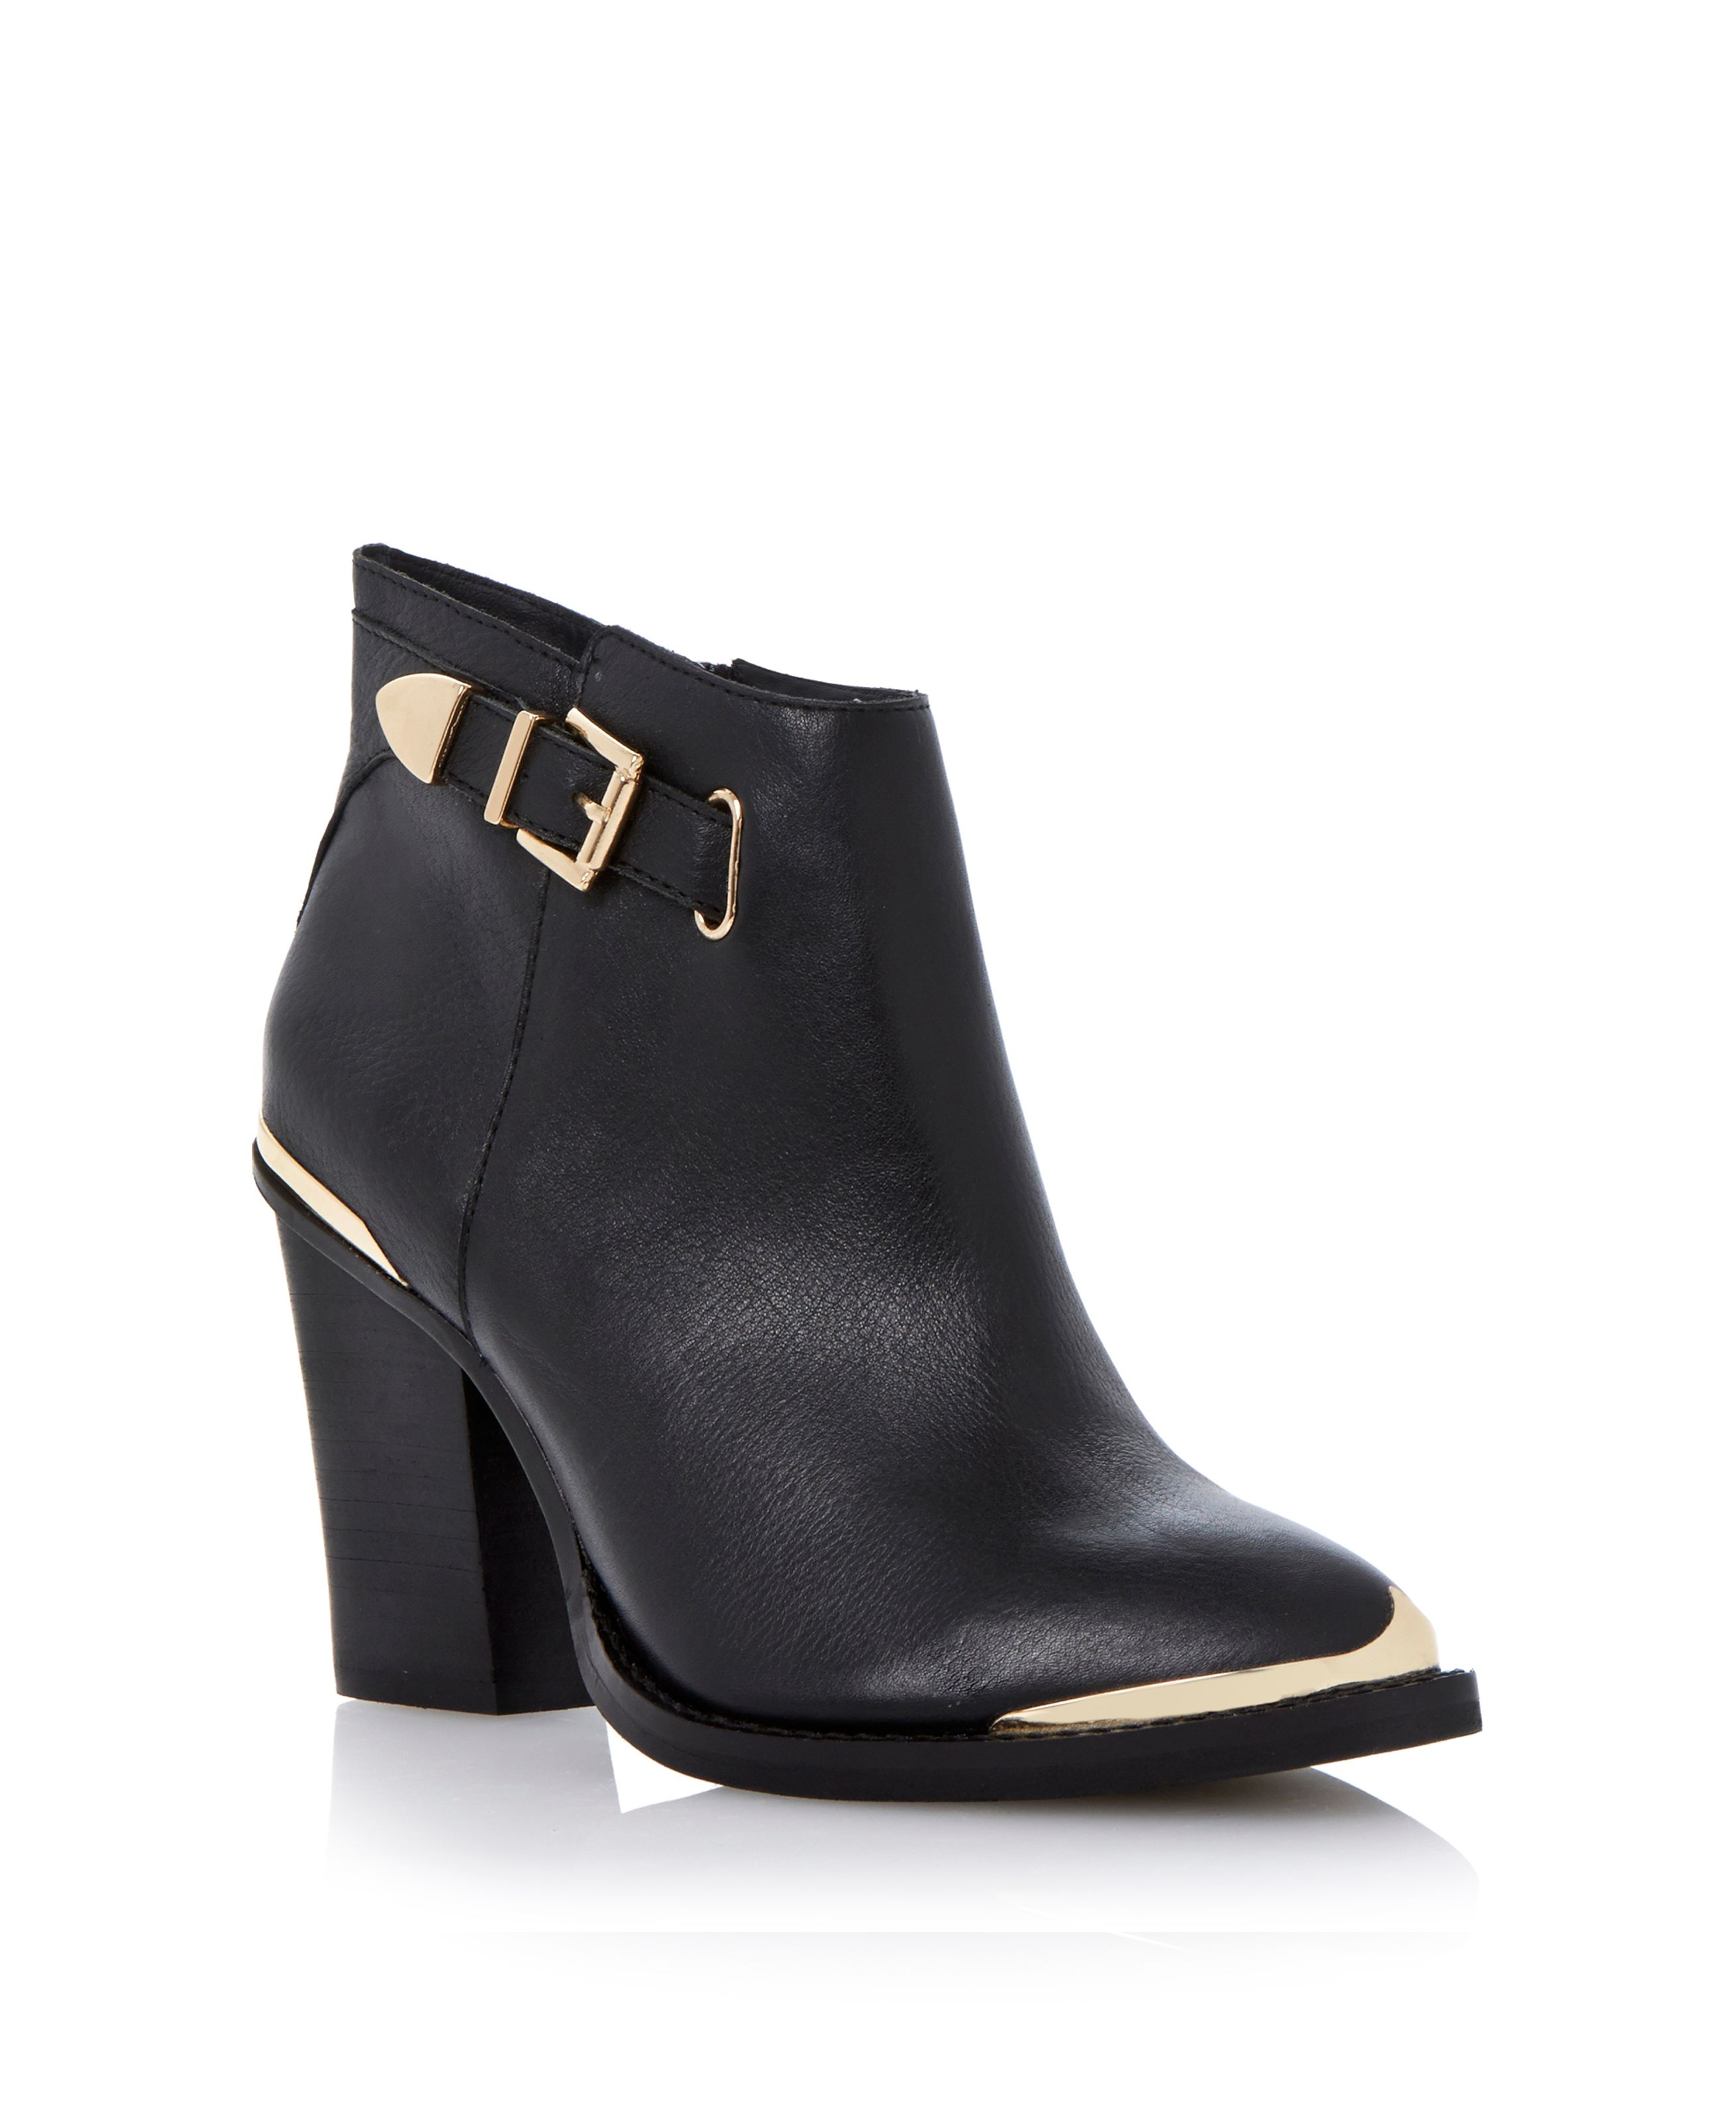 Partnir leather almond toe block heel ankle boots